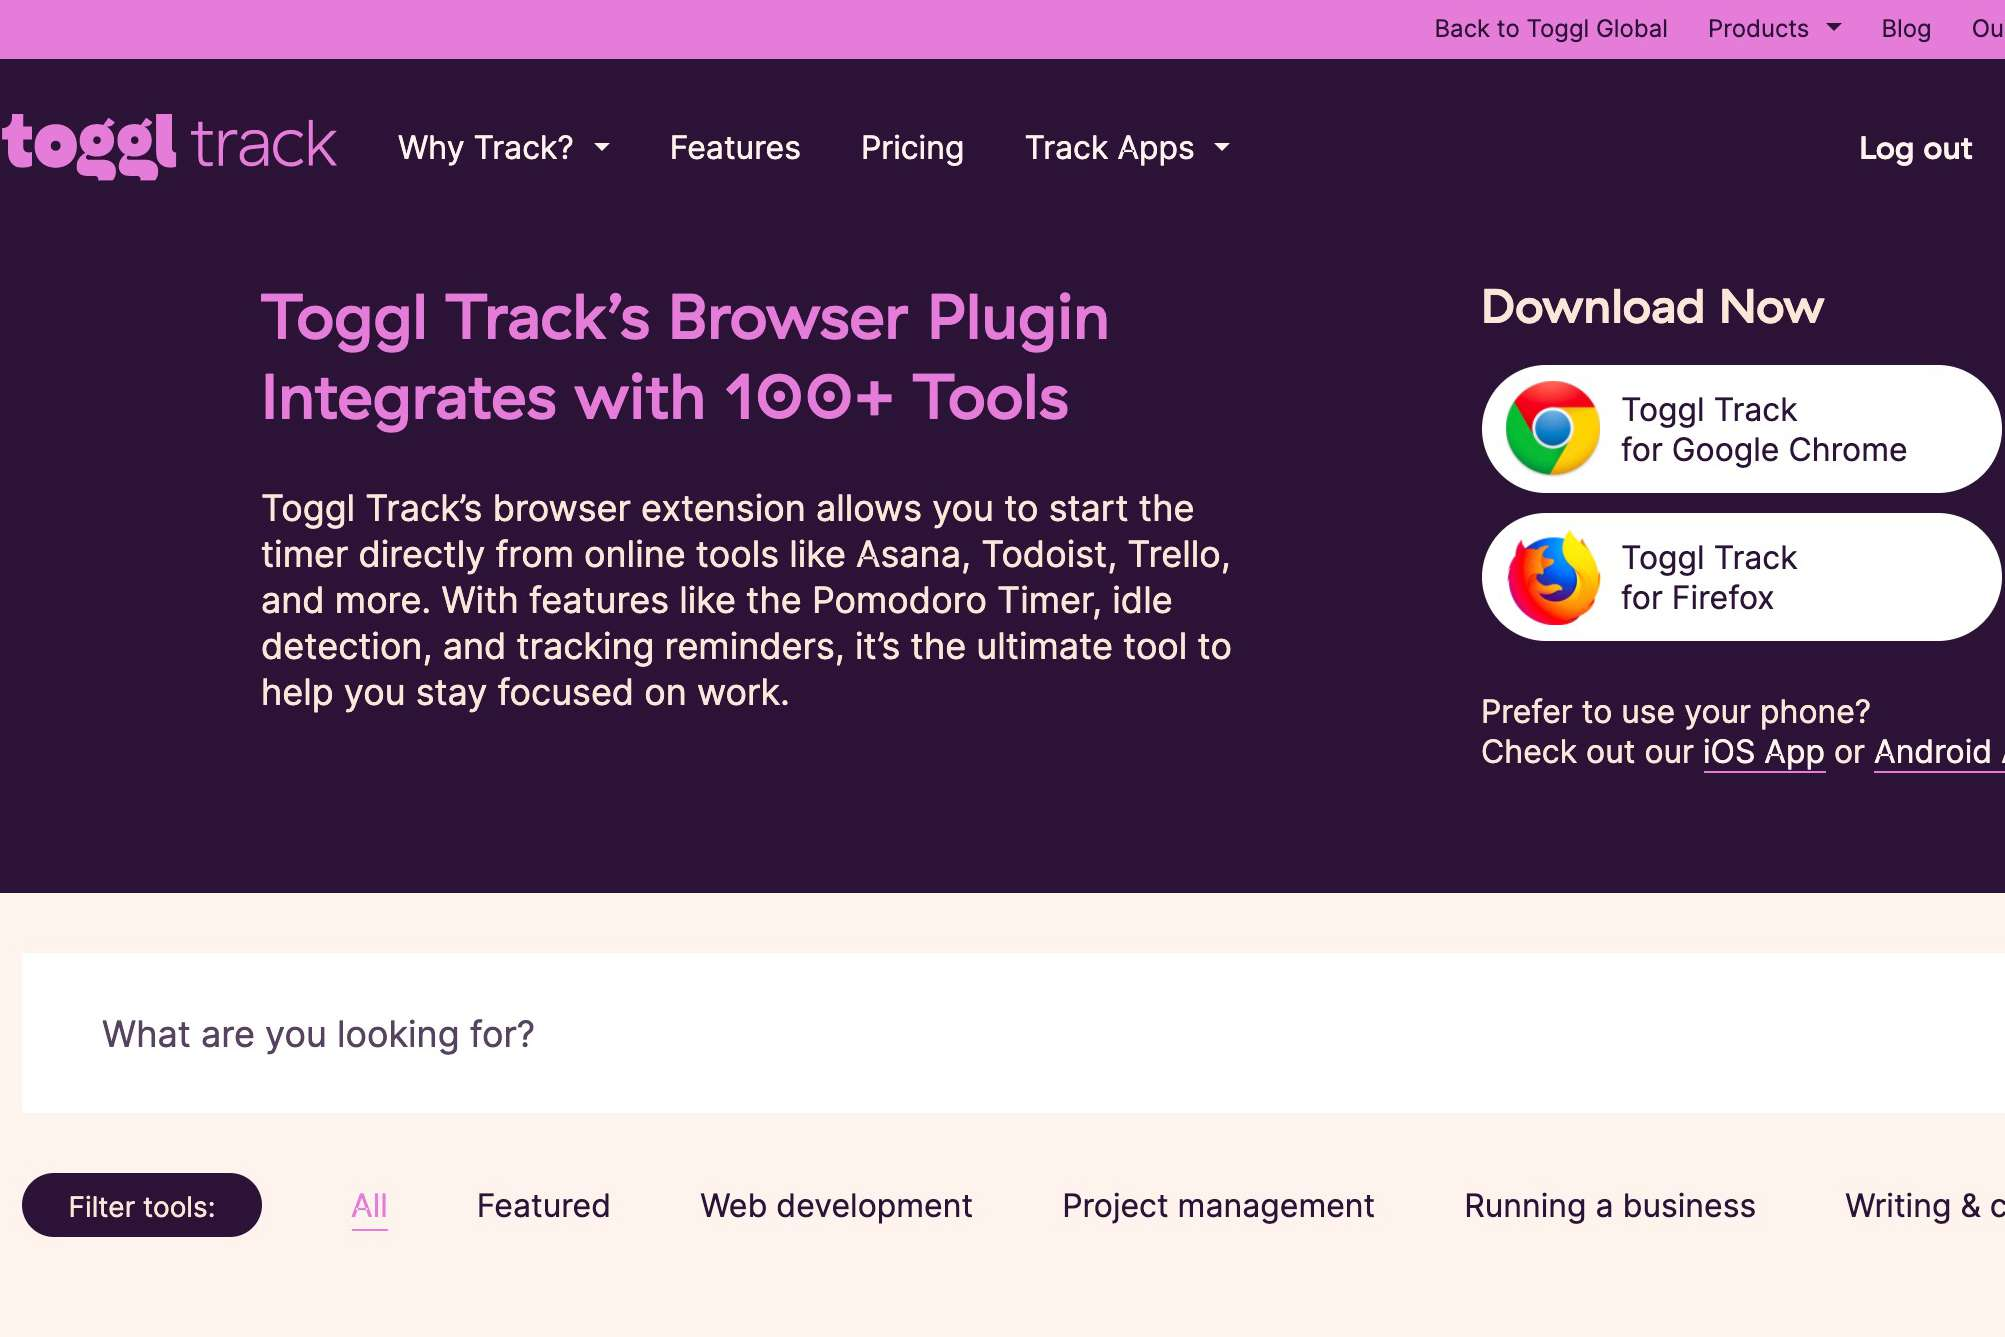 Toggl Track Browser Plugin page